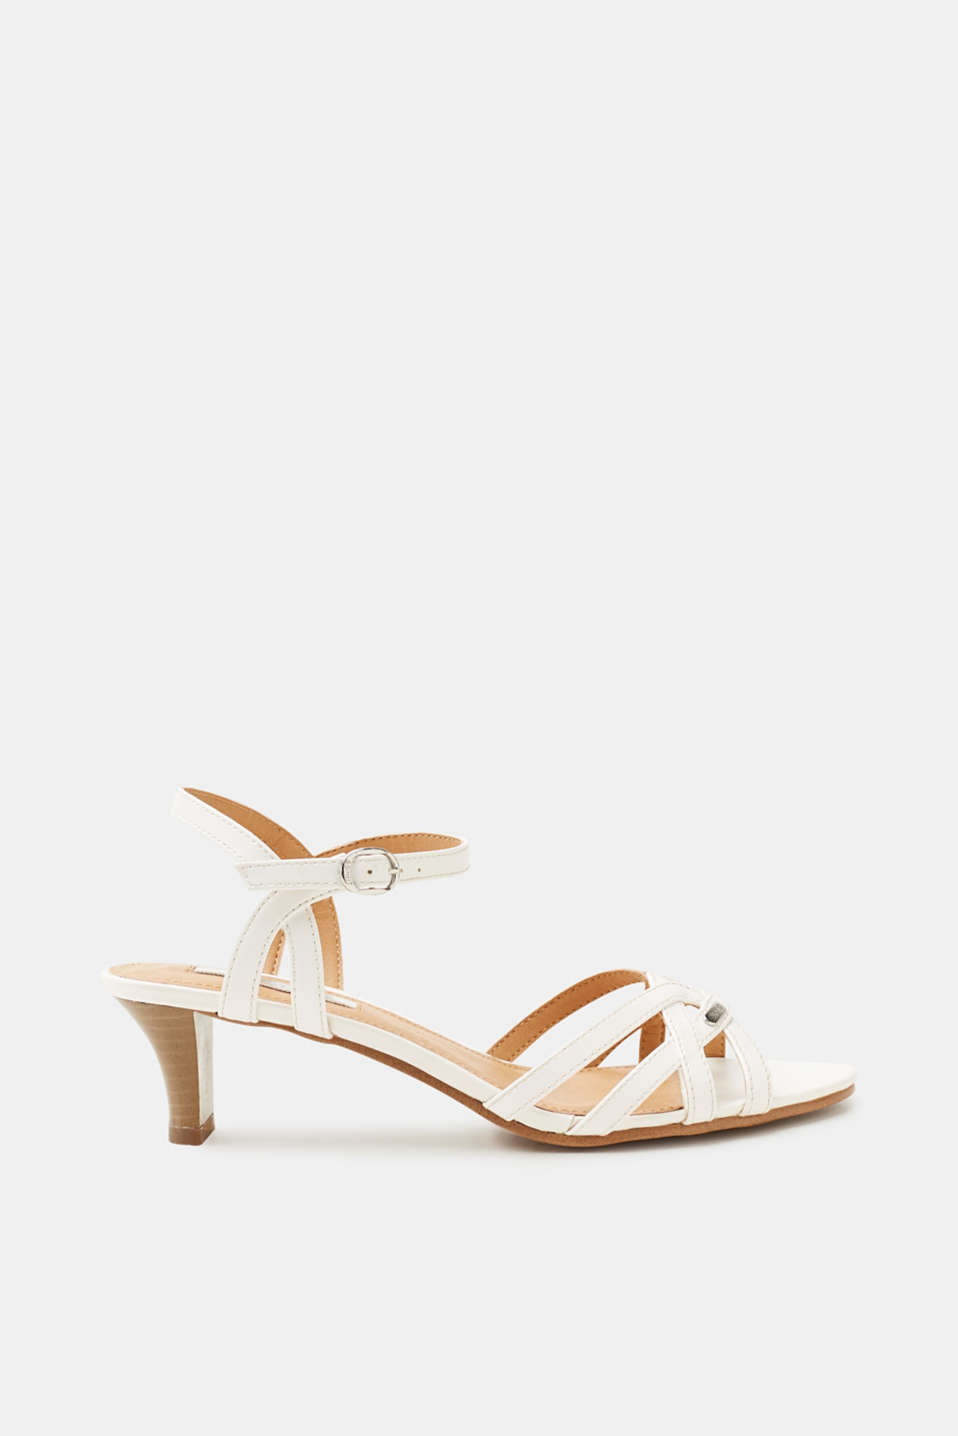 Esprit - Sandals with a funnel heel, in faux leather